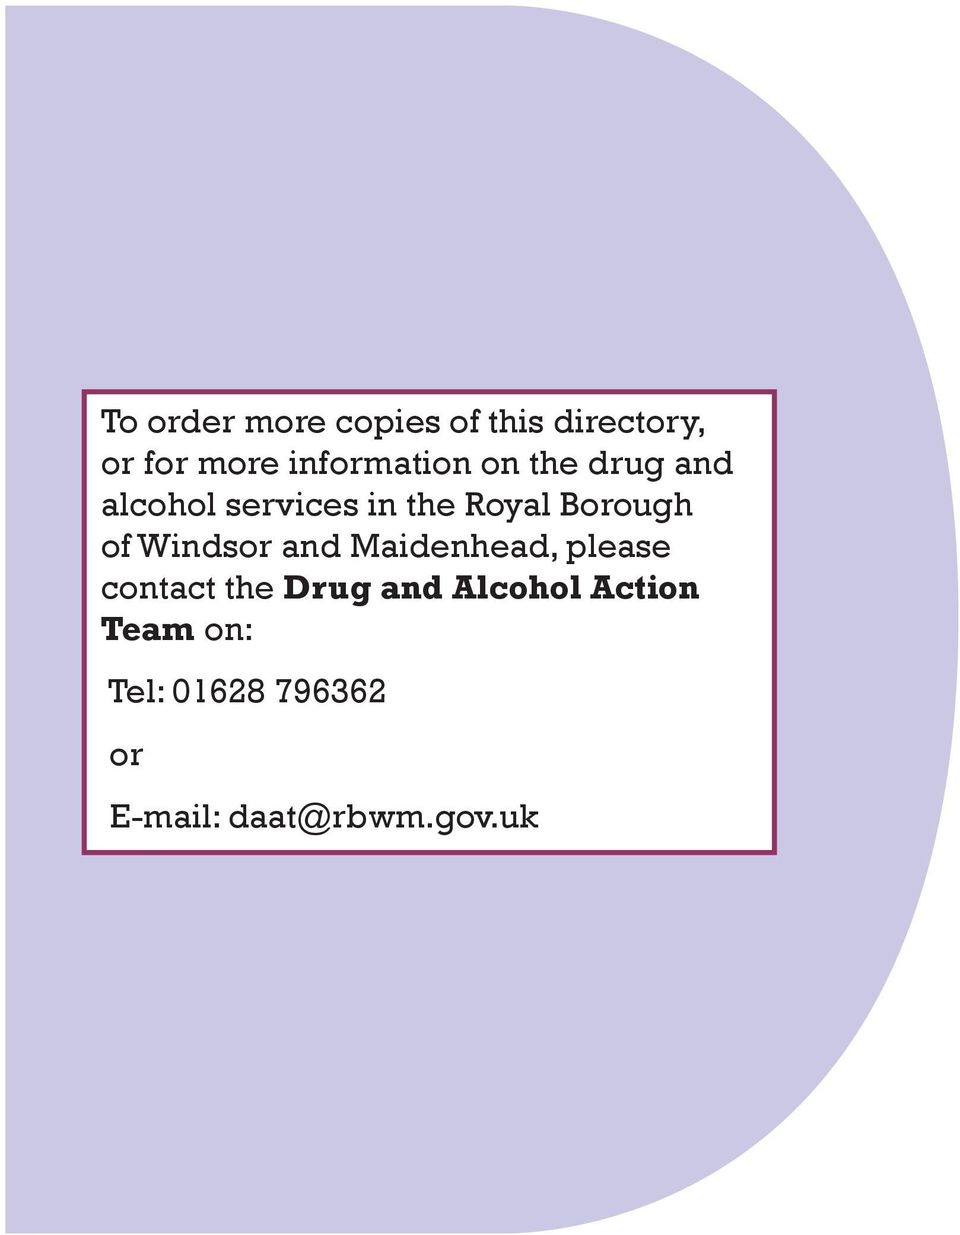 Borough of Windsor and Maidenhead, please contact the Drug